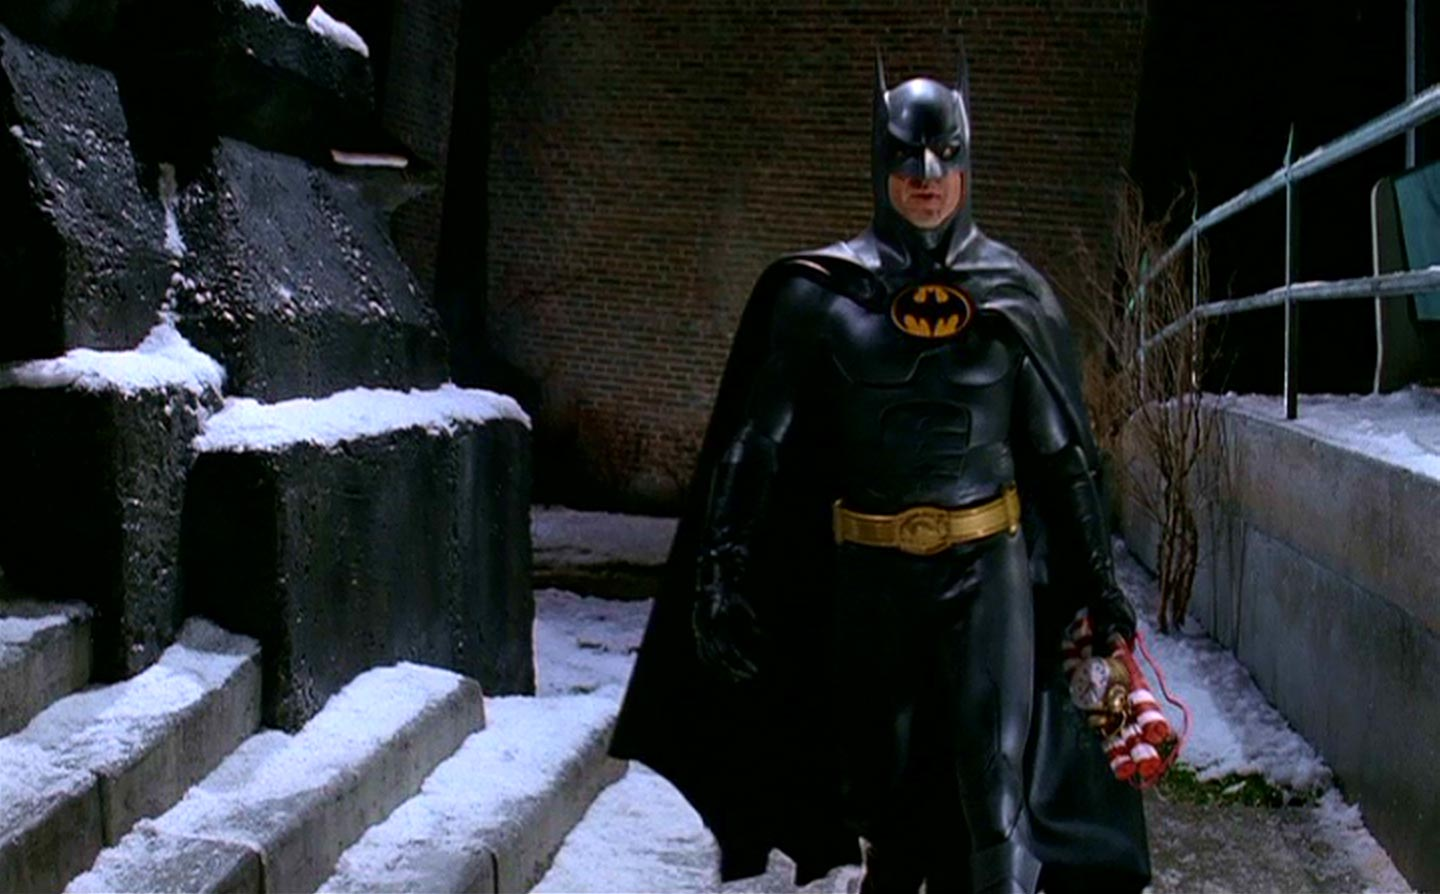 Batman Returns Backgrounds on Wallpapers Vista